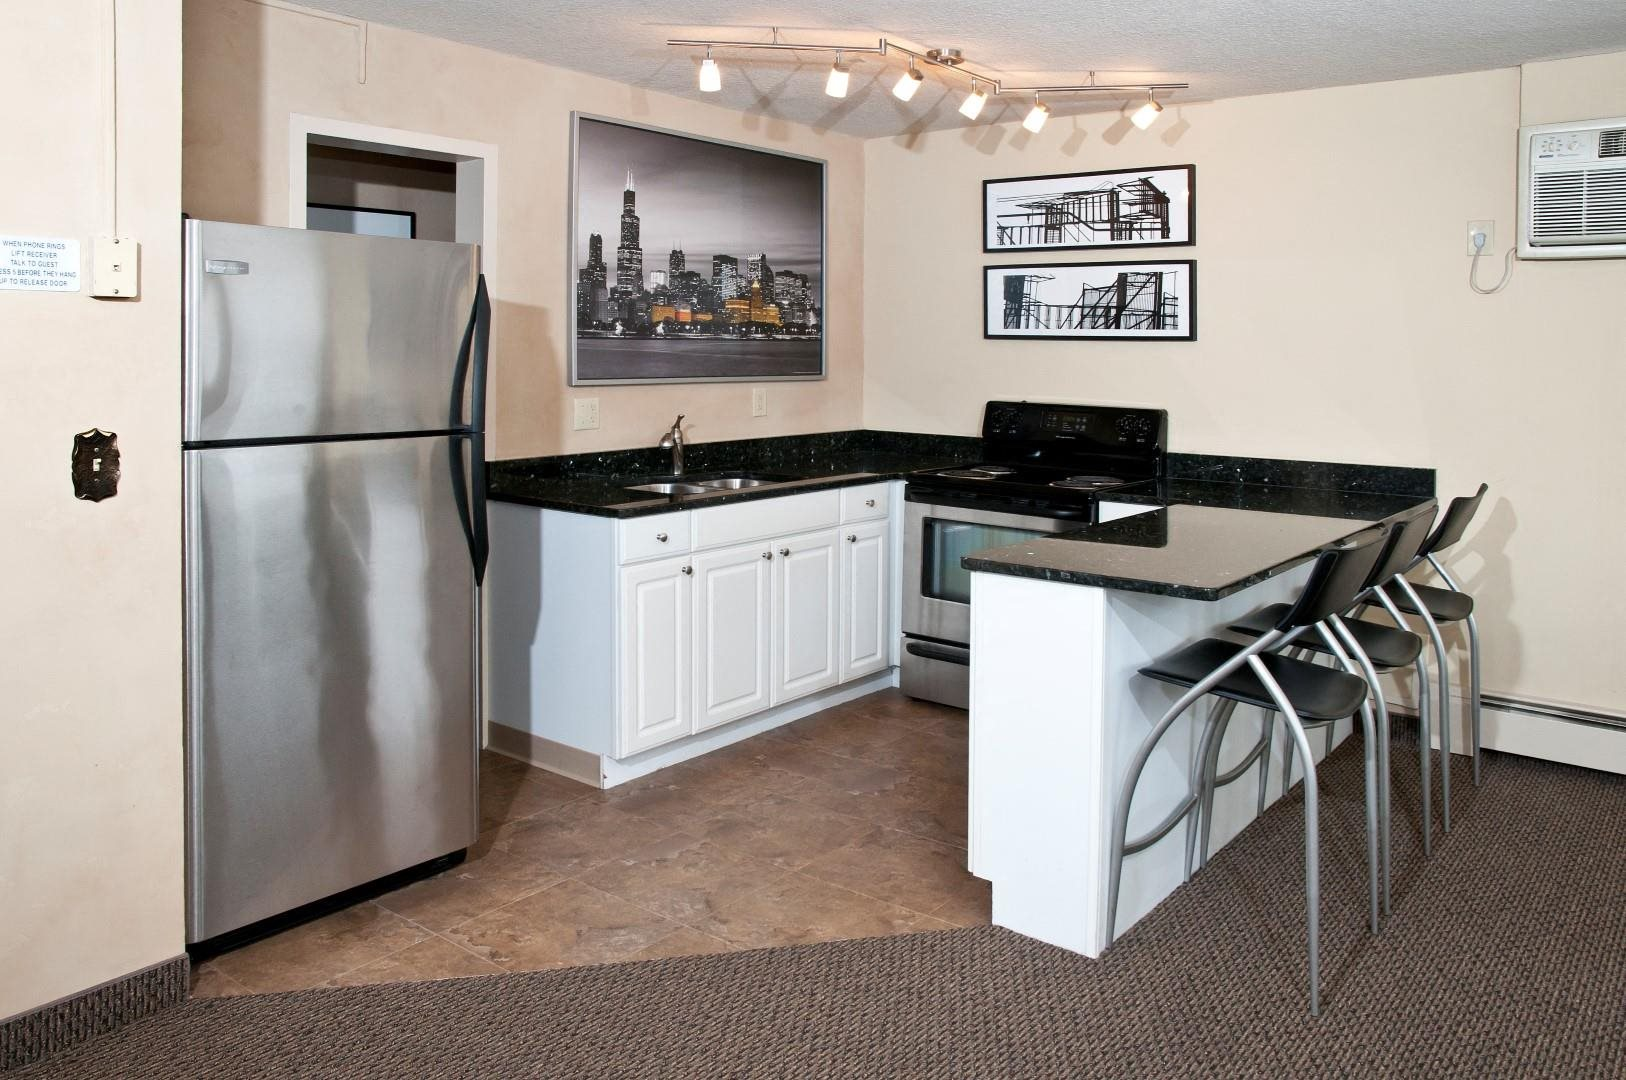 Boulevard 100 Apartments Kitchen with White Cabinetry, Black Counter Tops and Stainless Steal Appliances